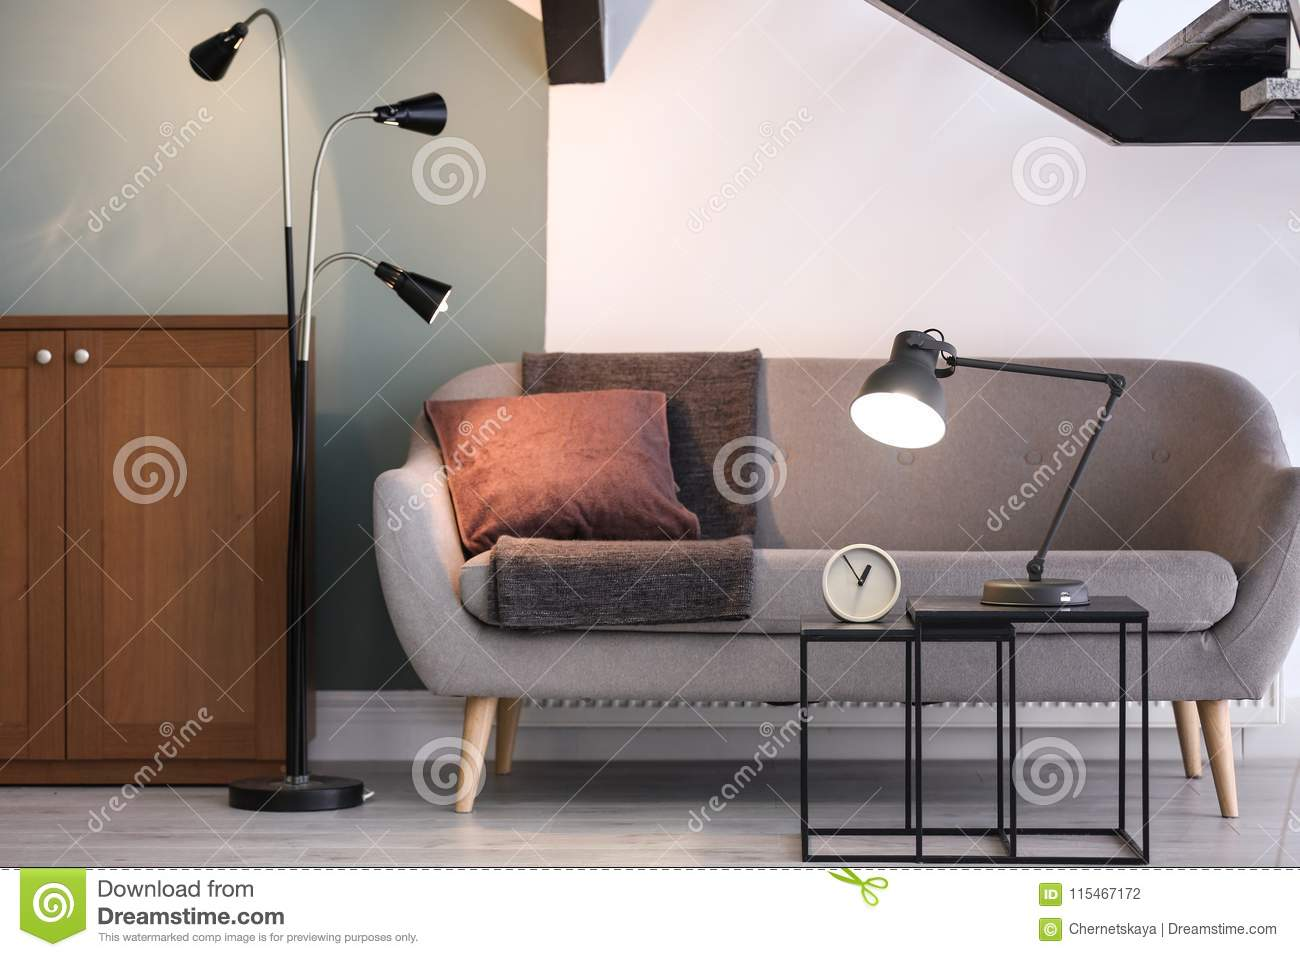 Modern Living Room Interior With Lamps Stock Photo - Image ...